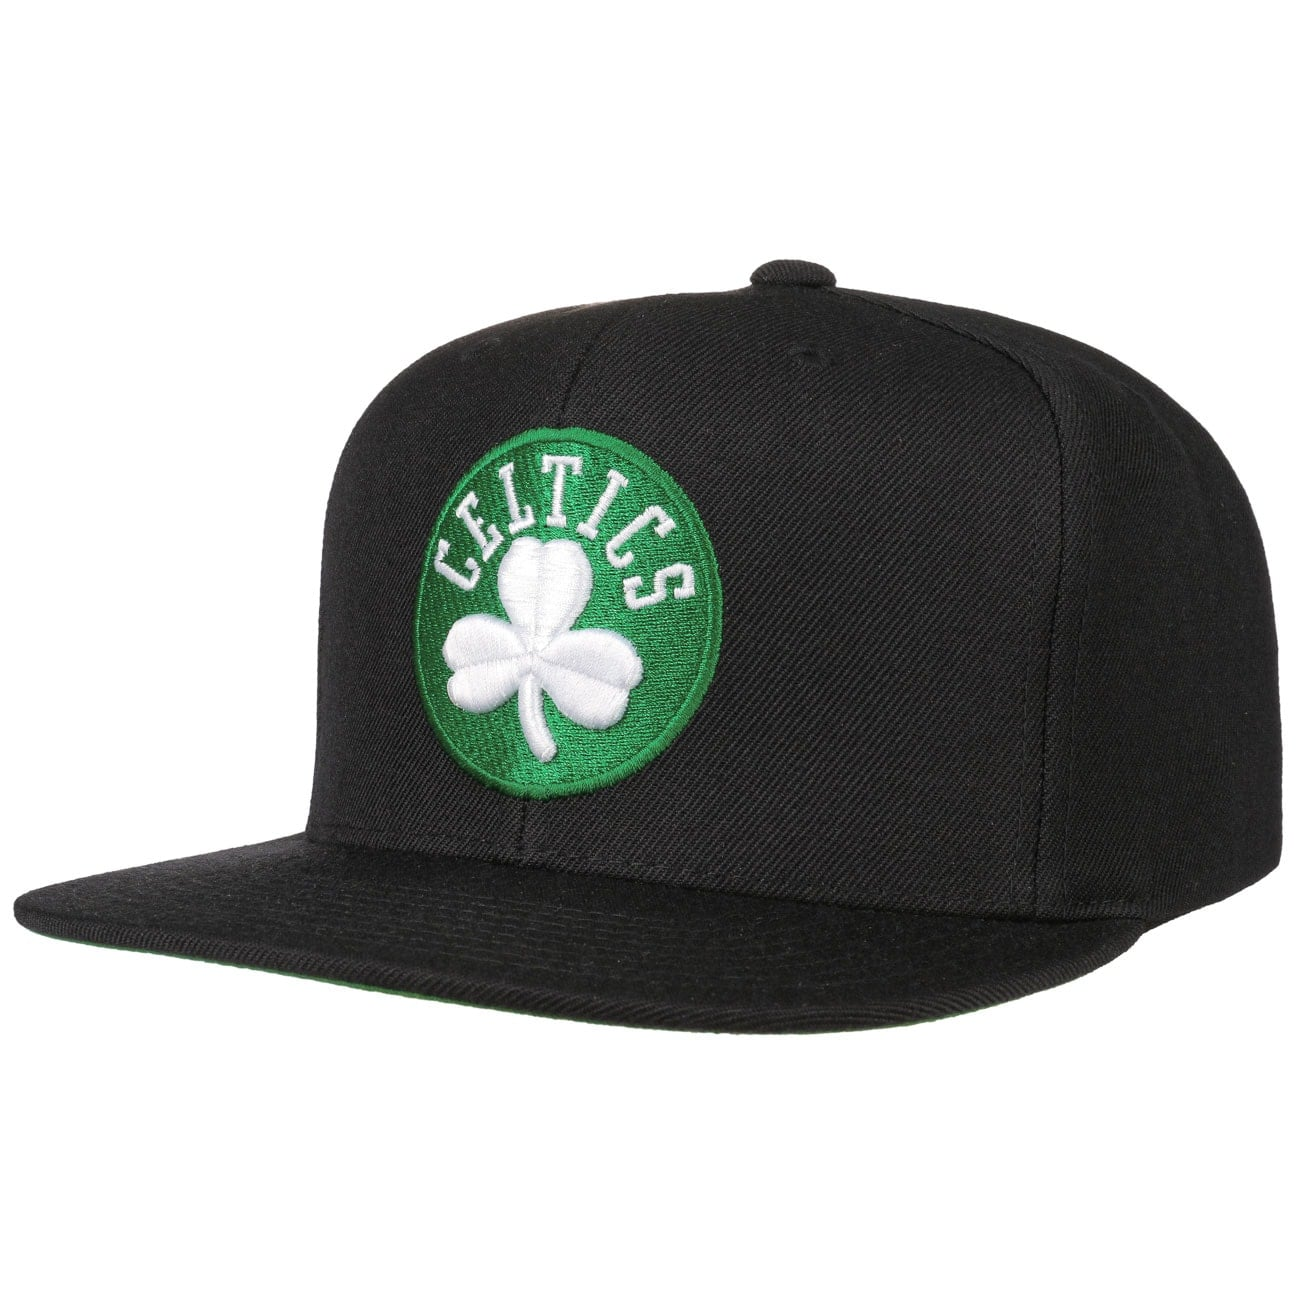 wool-solid-2-celtics-by-mitchell-ness